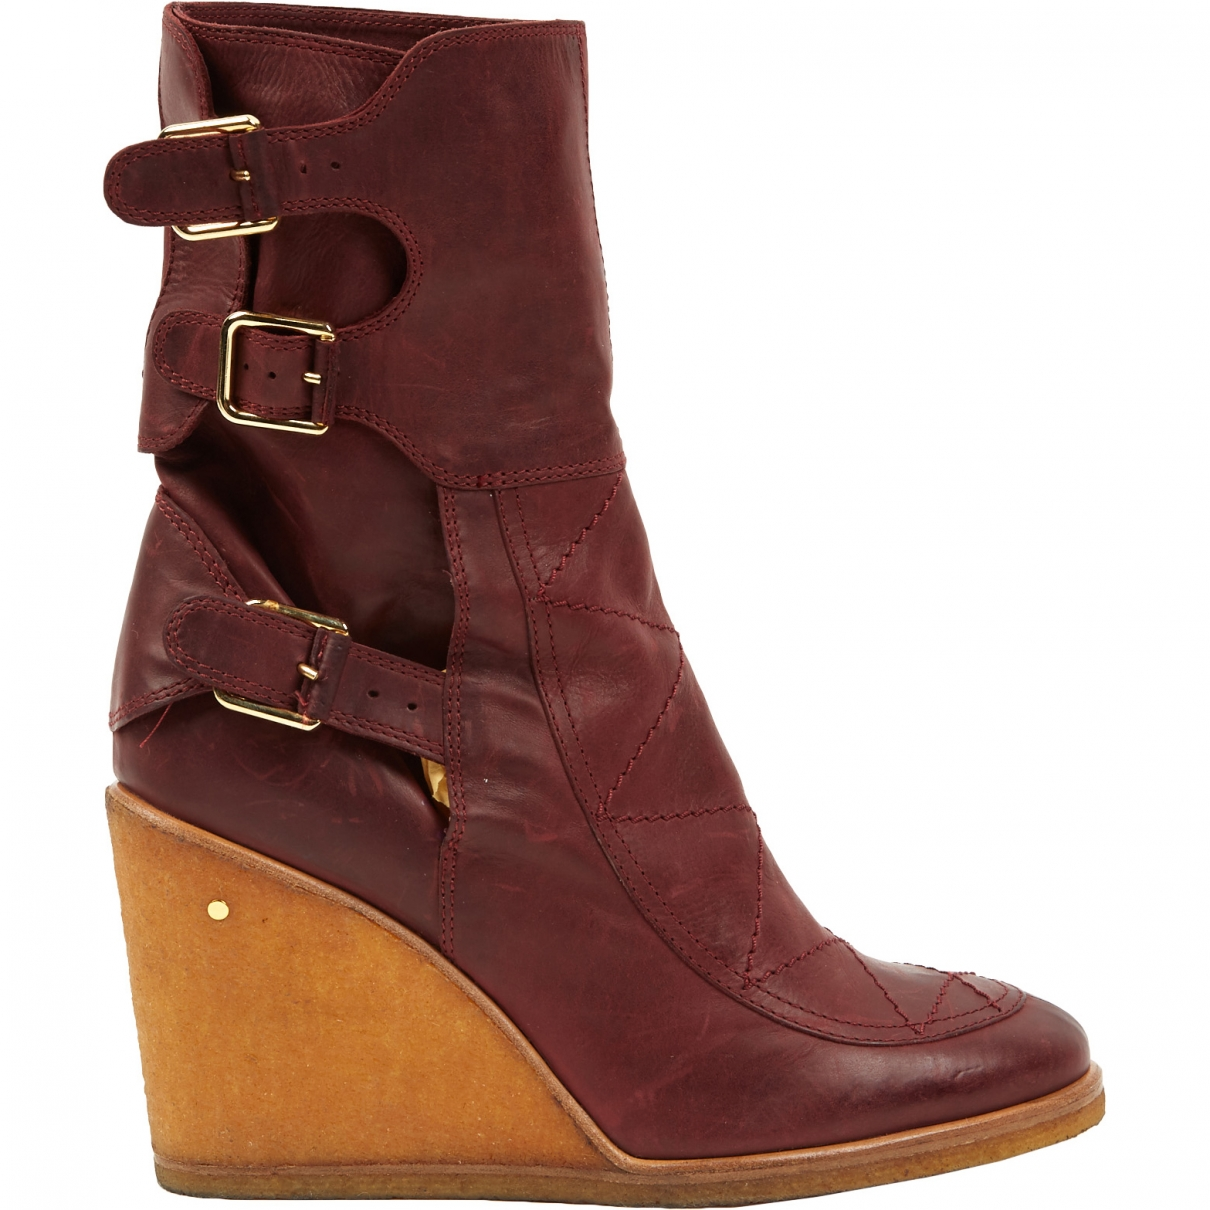 Laurence Dacade \N Burgundy Leather Ankle boots for Women 40 EU